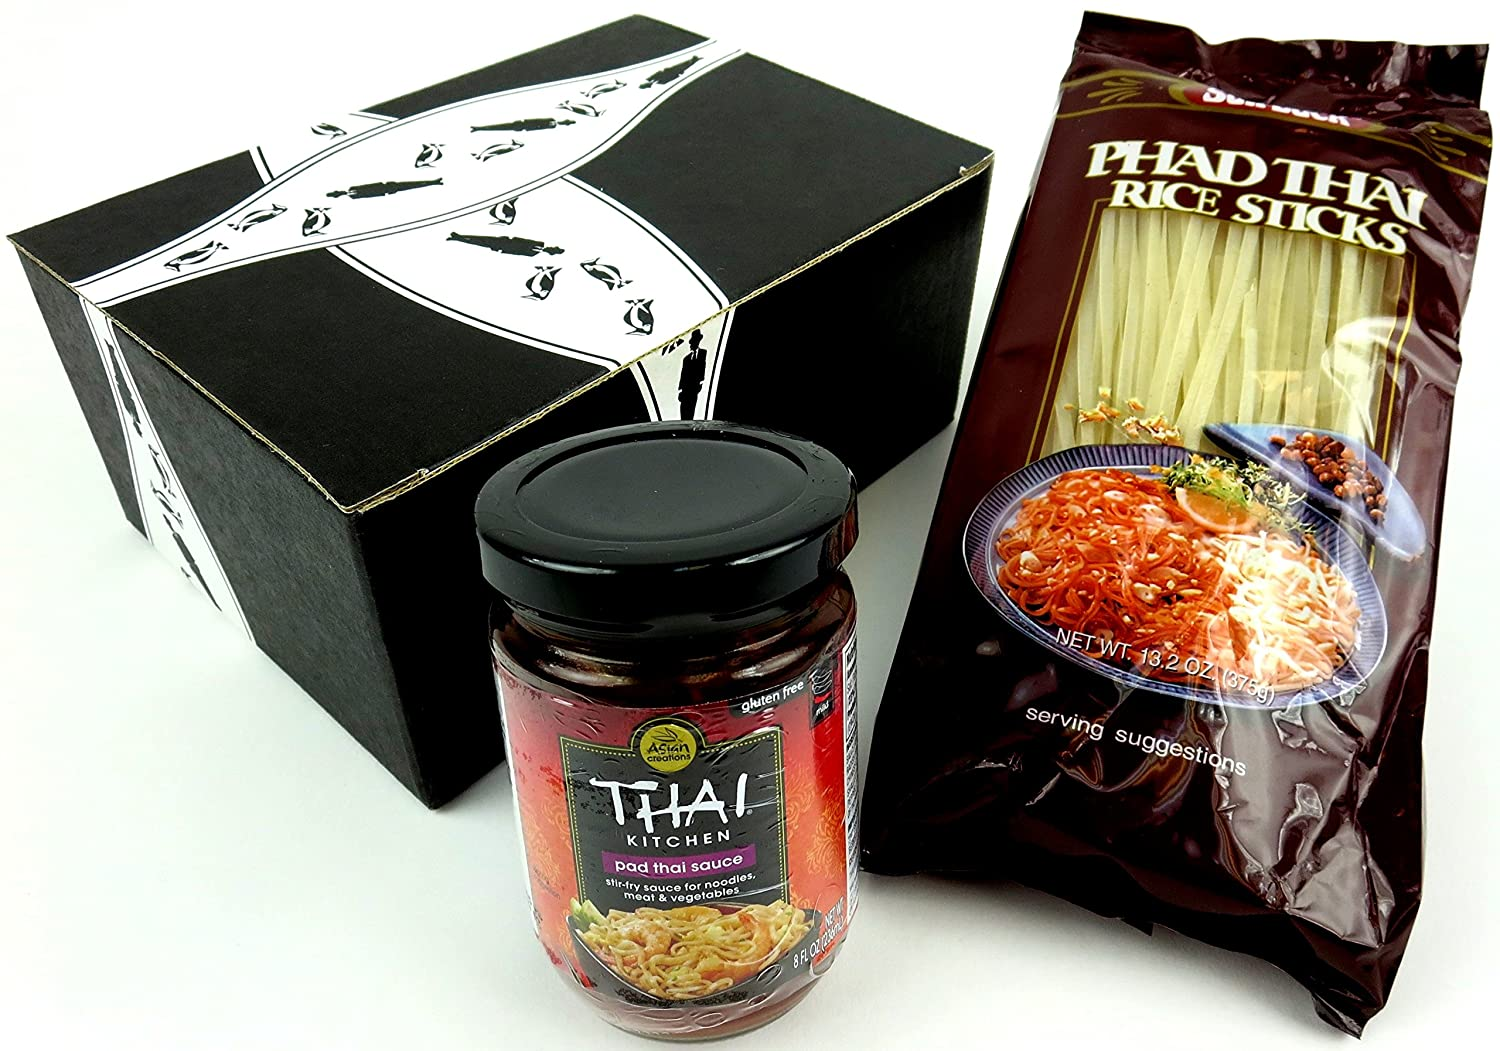 Amazon.com : Pad Thai Kit: One 13.2 oz Package of Sun Luck Phad Thai Rice  Sticks and One 8 oz Jar of Thai Kitchen Pad Thai Sauce in a Gift Box :  Grocery ...